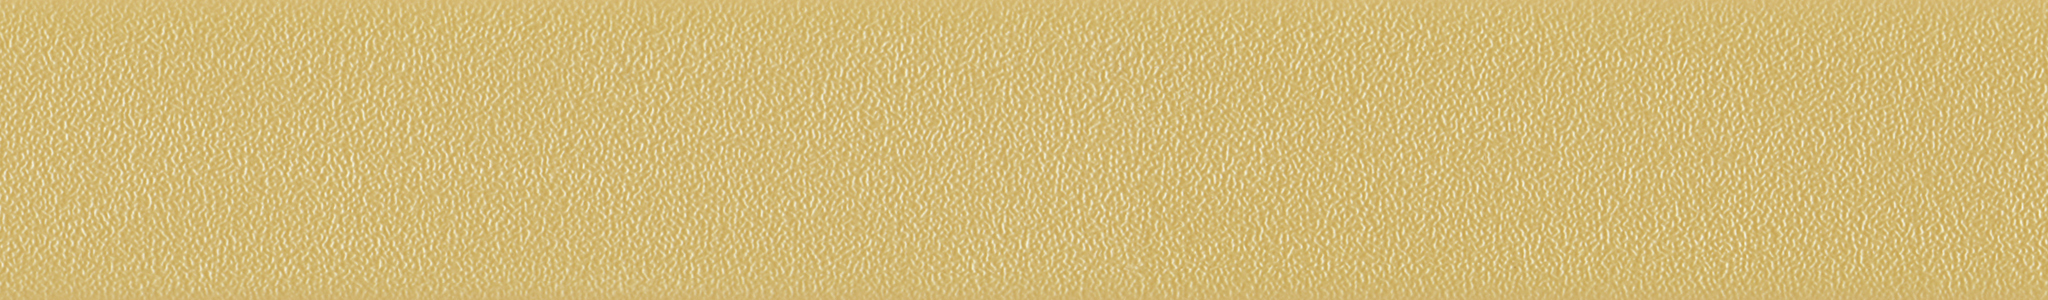 HD 295516 ABS Edge Gold Metallic Pearl